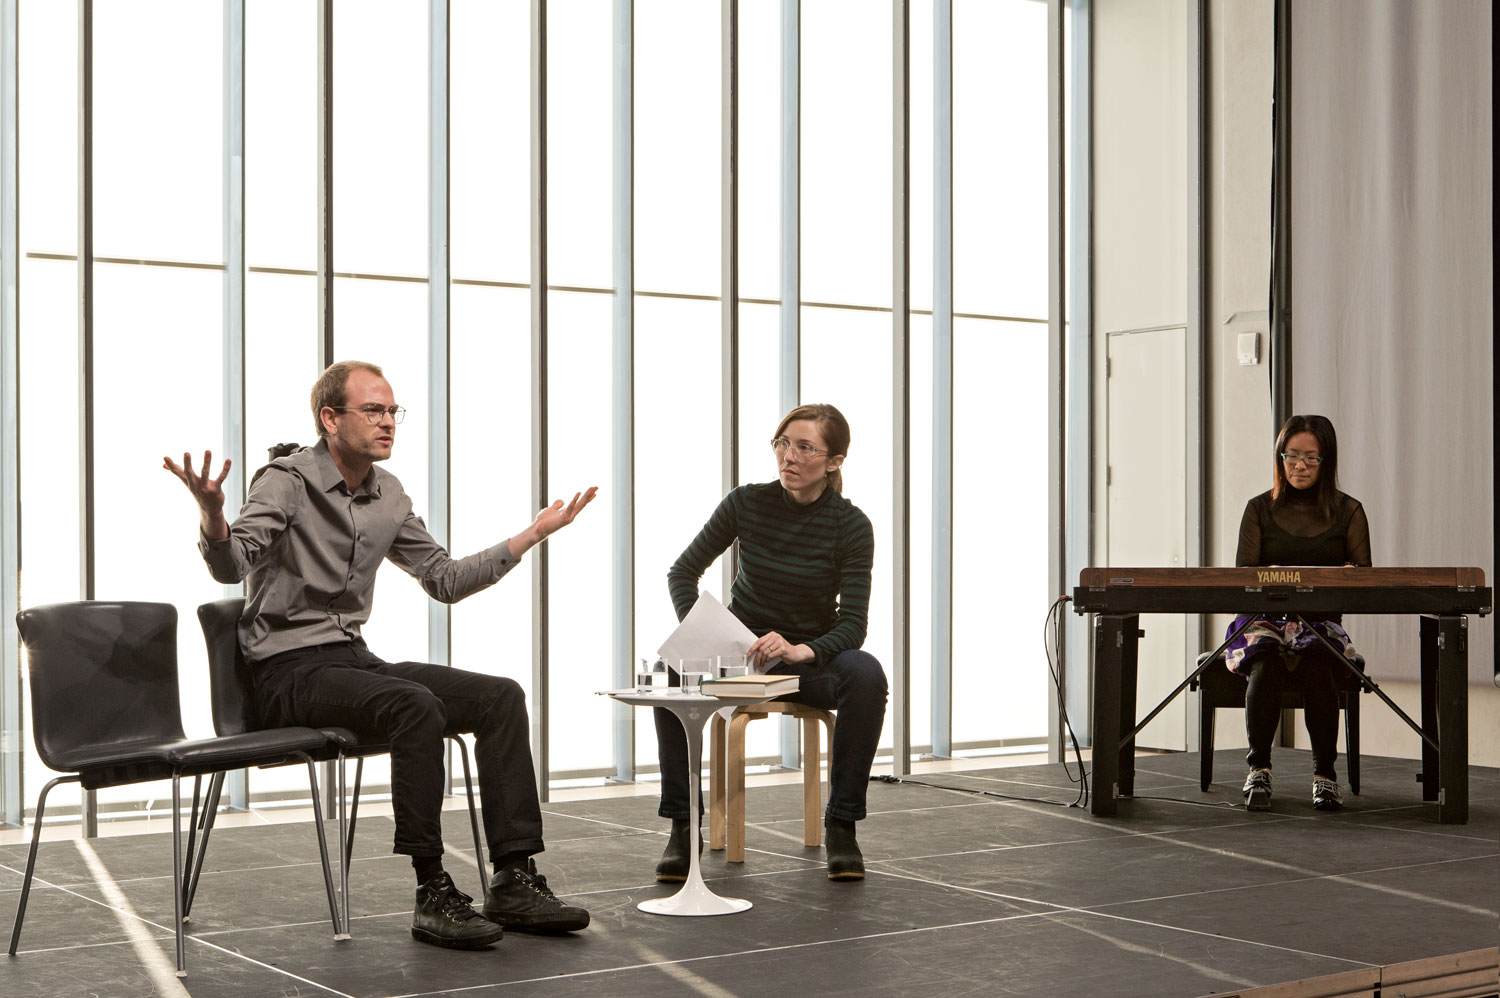 MICHÈLE GRAF & SELINA GRÜTER  ONE AGAINST ALL [UNO CONTRO TUTTI] Performance, Whitney Museum of American Art, 2018 Courtesy of the artists